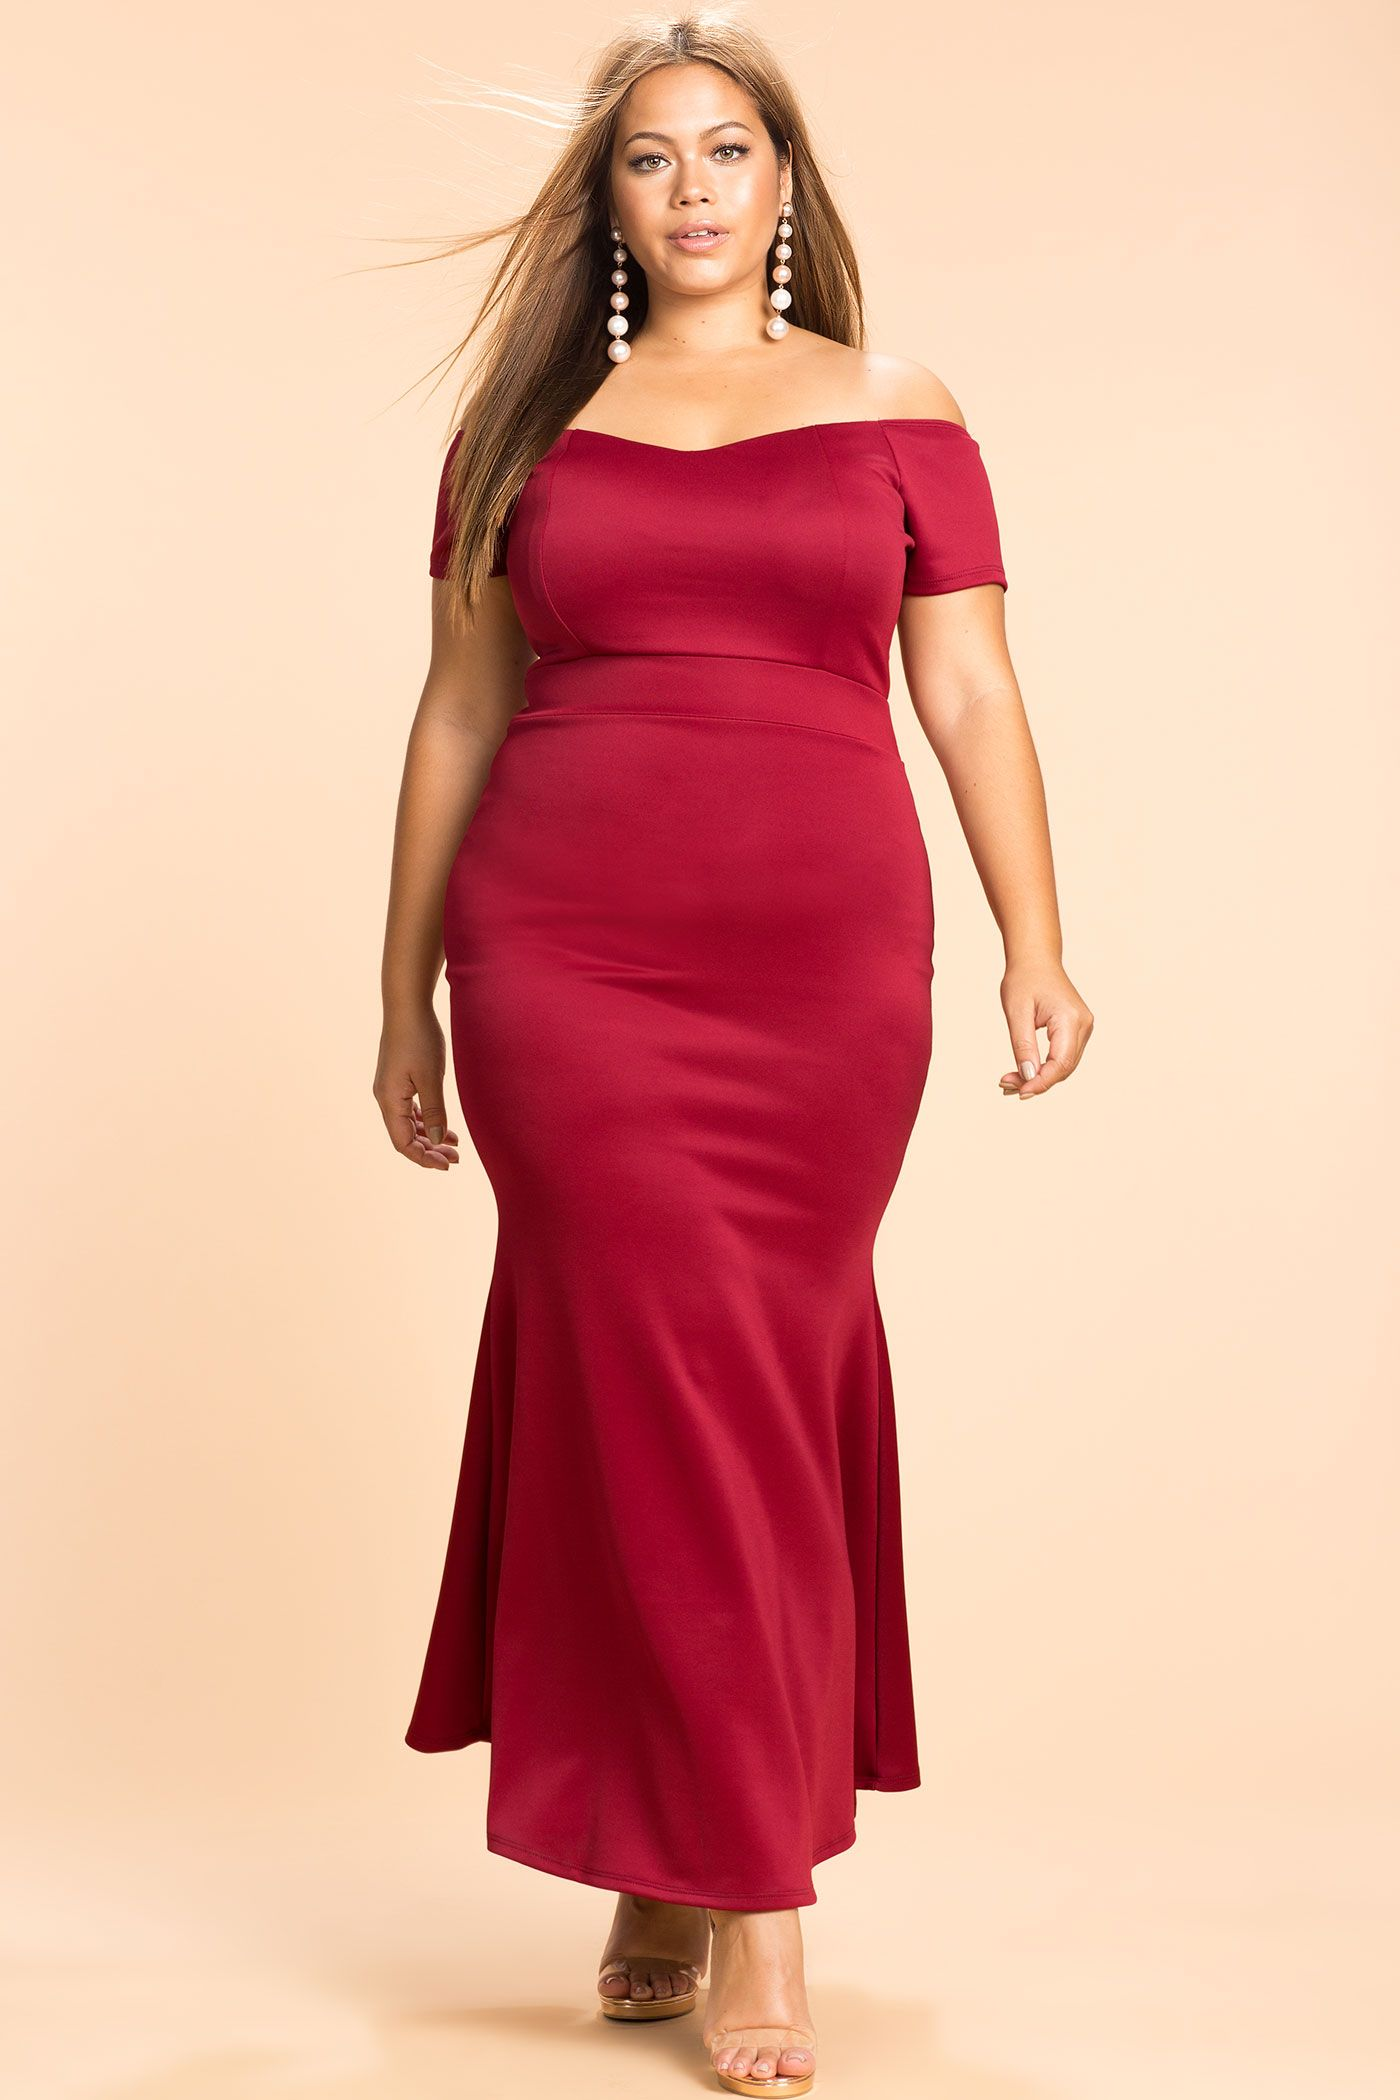 PlusSize Formal Fall 2017 Plus Size Mermaid Off